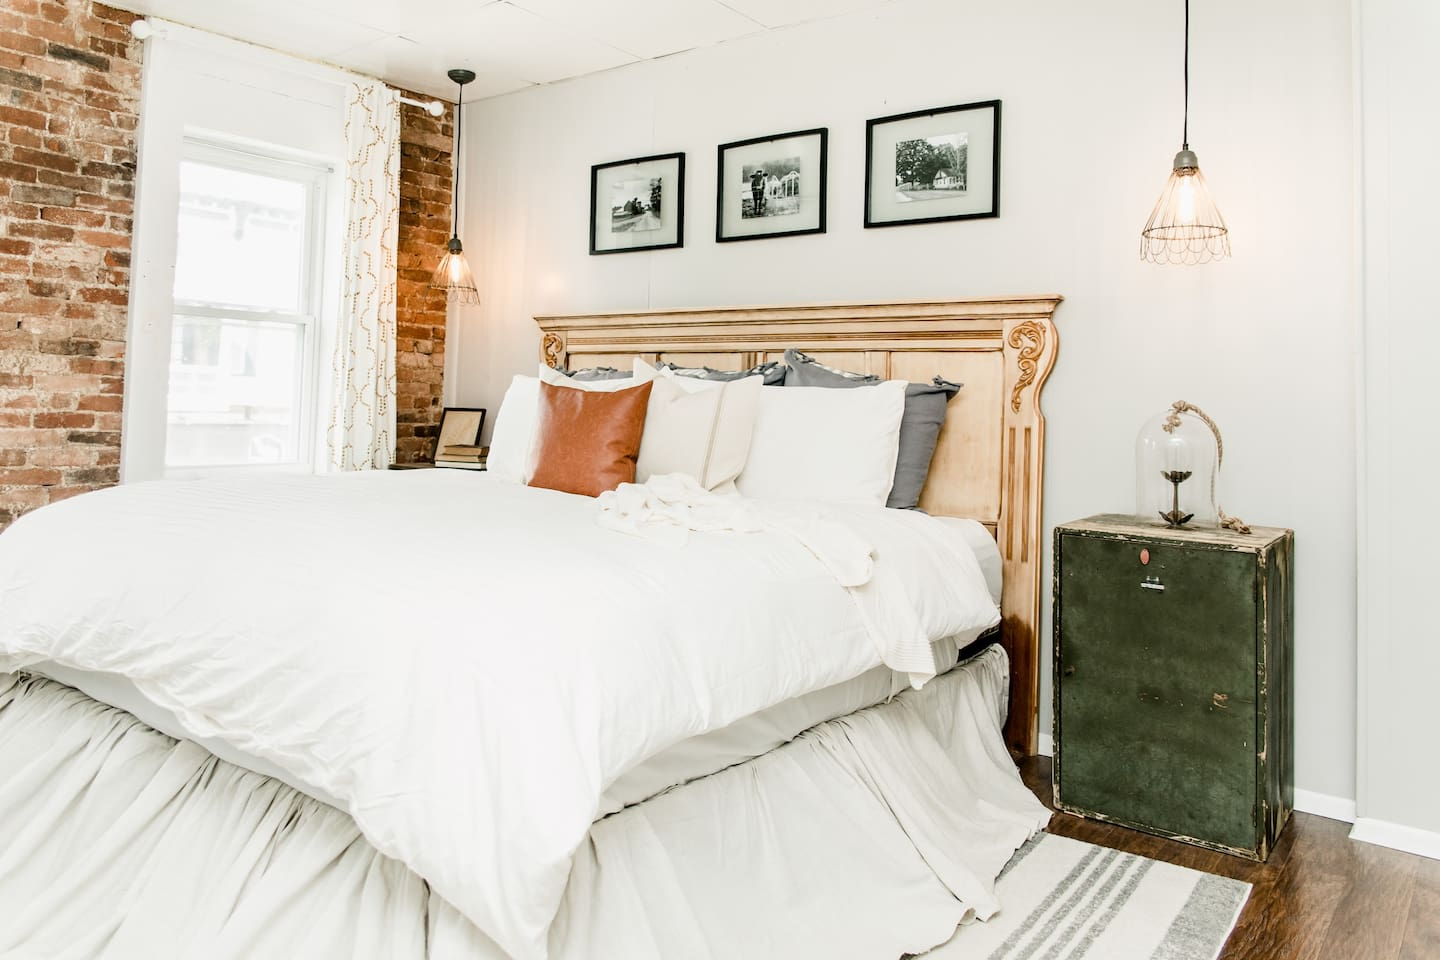 Master bedroom with an exposed brick wall. King size bed.